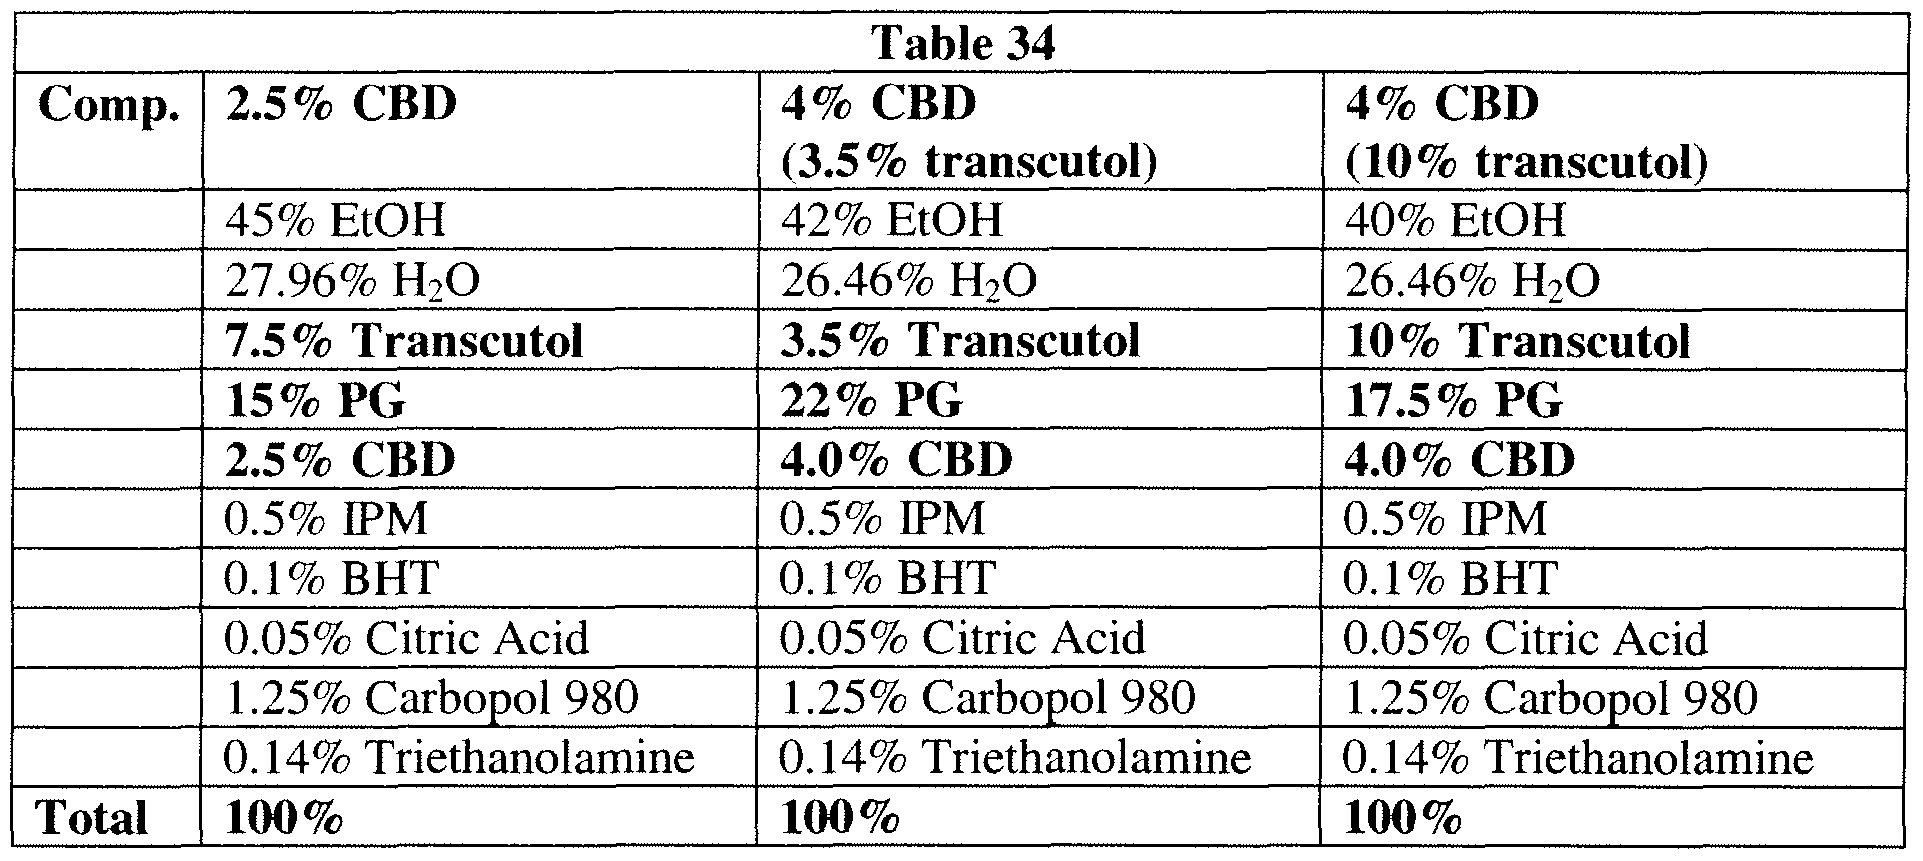 WO2010127033A1 - Formulations of cannabidiol and methods of using